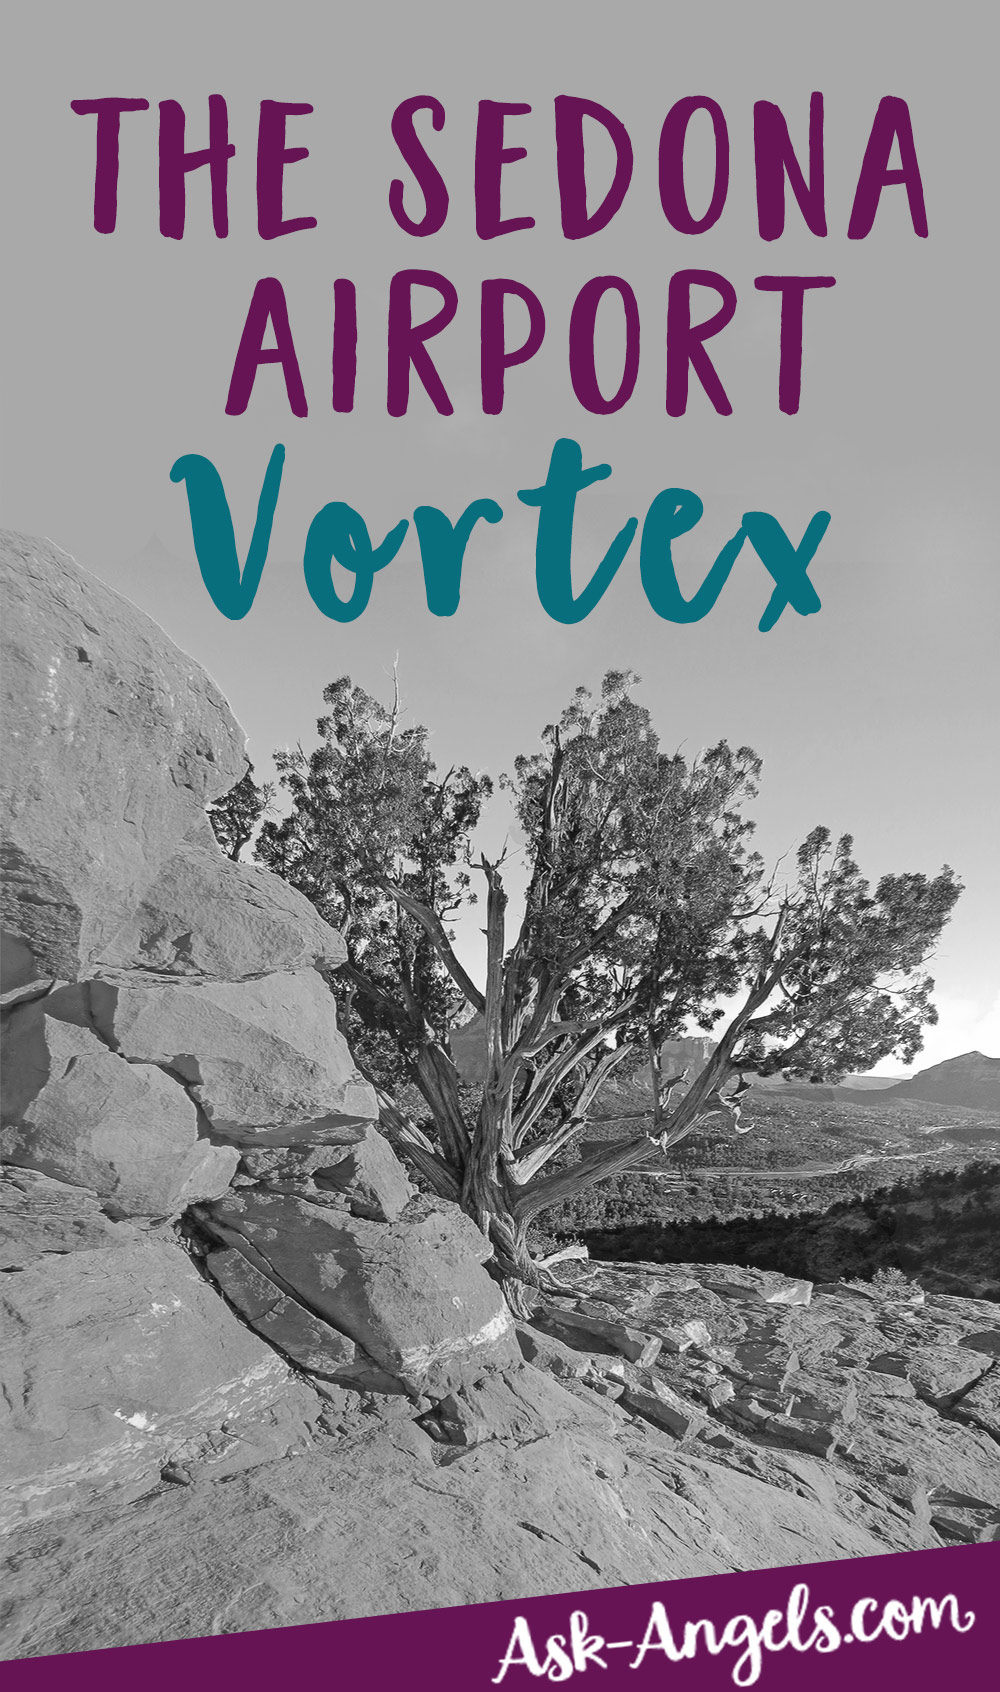 The Sedona Airport Vortex